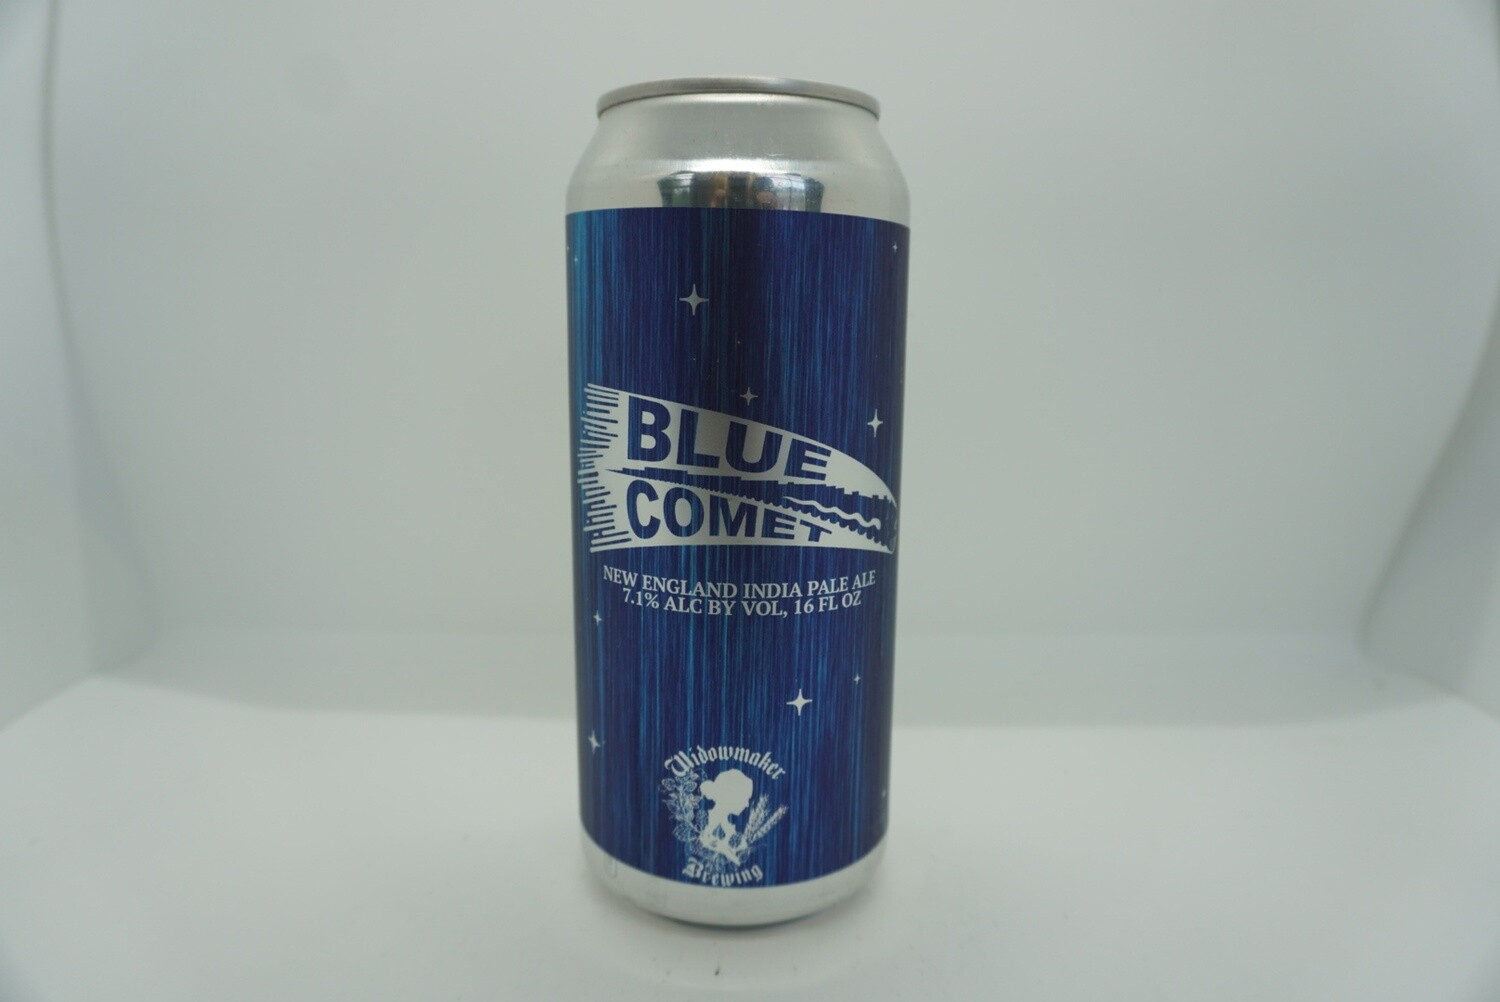 Widowmaker Brewing - Blue Comet - New England IPA - 7.1% ABV - 16oz Can